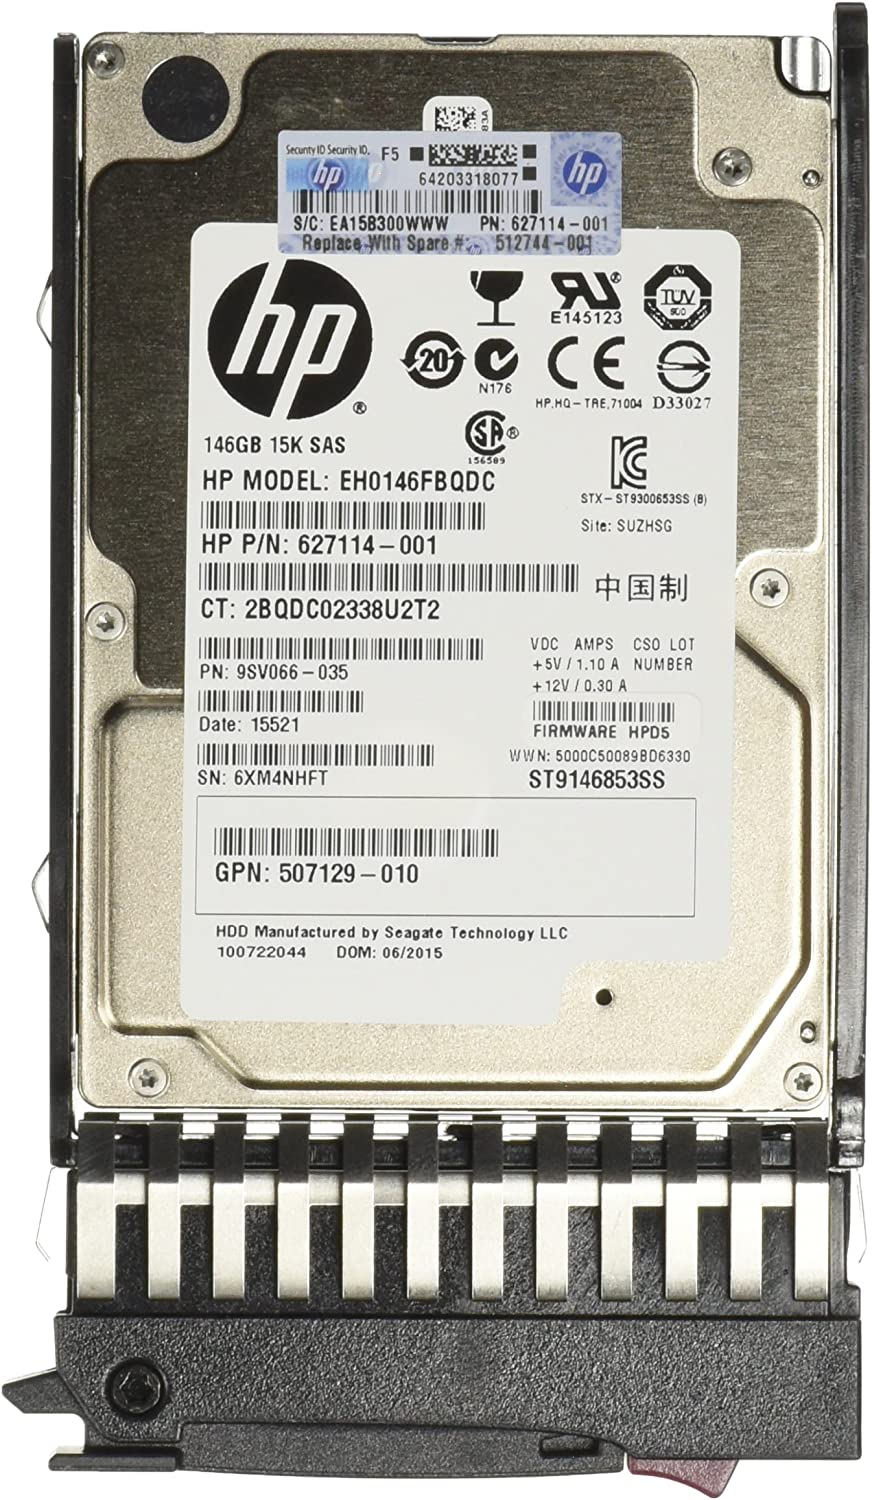 HP 146-GB 6G 15K 2.5 DP SAS HDD 146 SAS 16 MB Cache 2.5-Inch Internal Bare or OEM Drives 512744-001